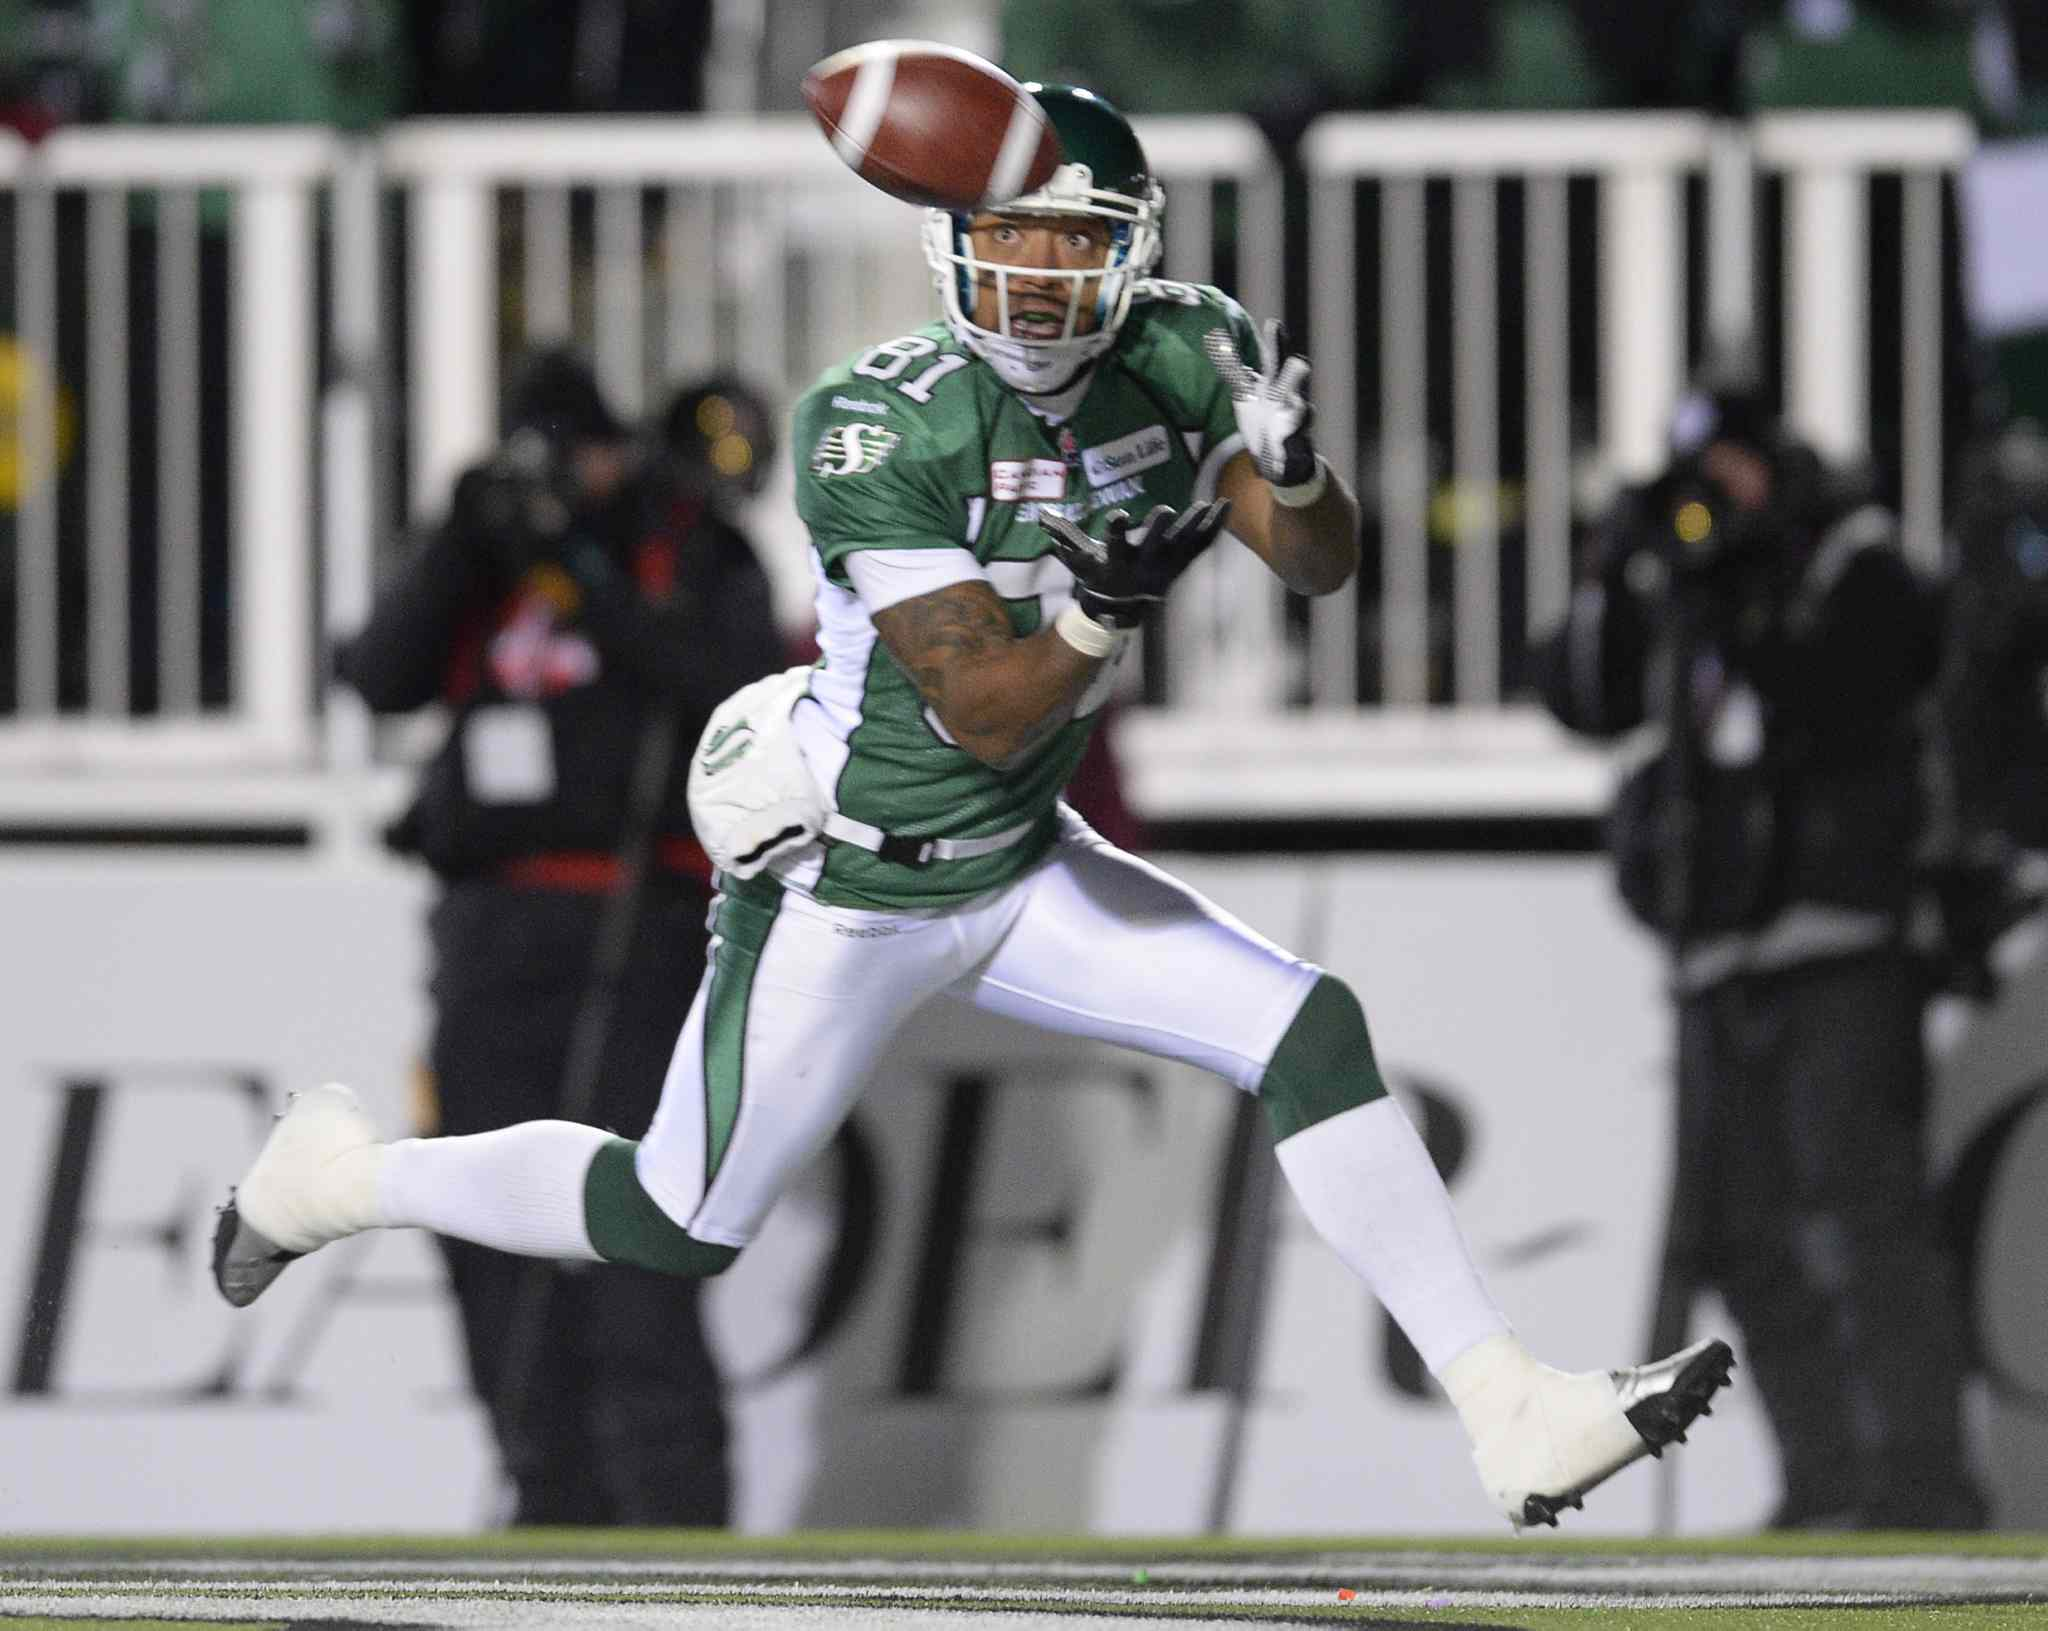 Saskatchewan Roughriders slotback Geroy Simon catches the ball in the end zone for a touchdown as they face the Hamilton Tiger-Cats during first quarter of the Grey Cup Sunday November 24, 2013 in Regina. THE CANADIAN PRESS/Frank Gunn